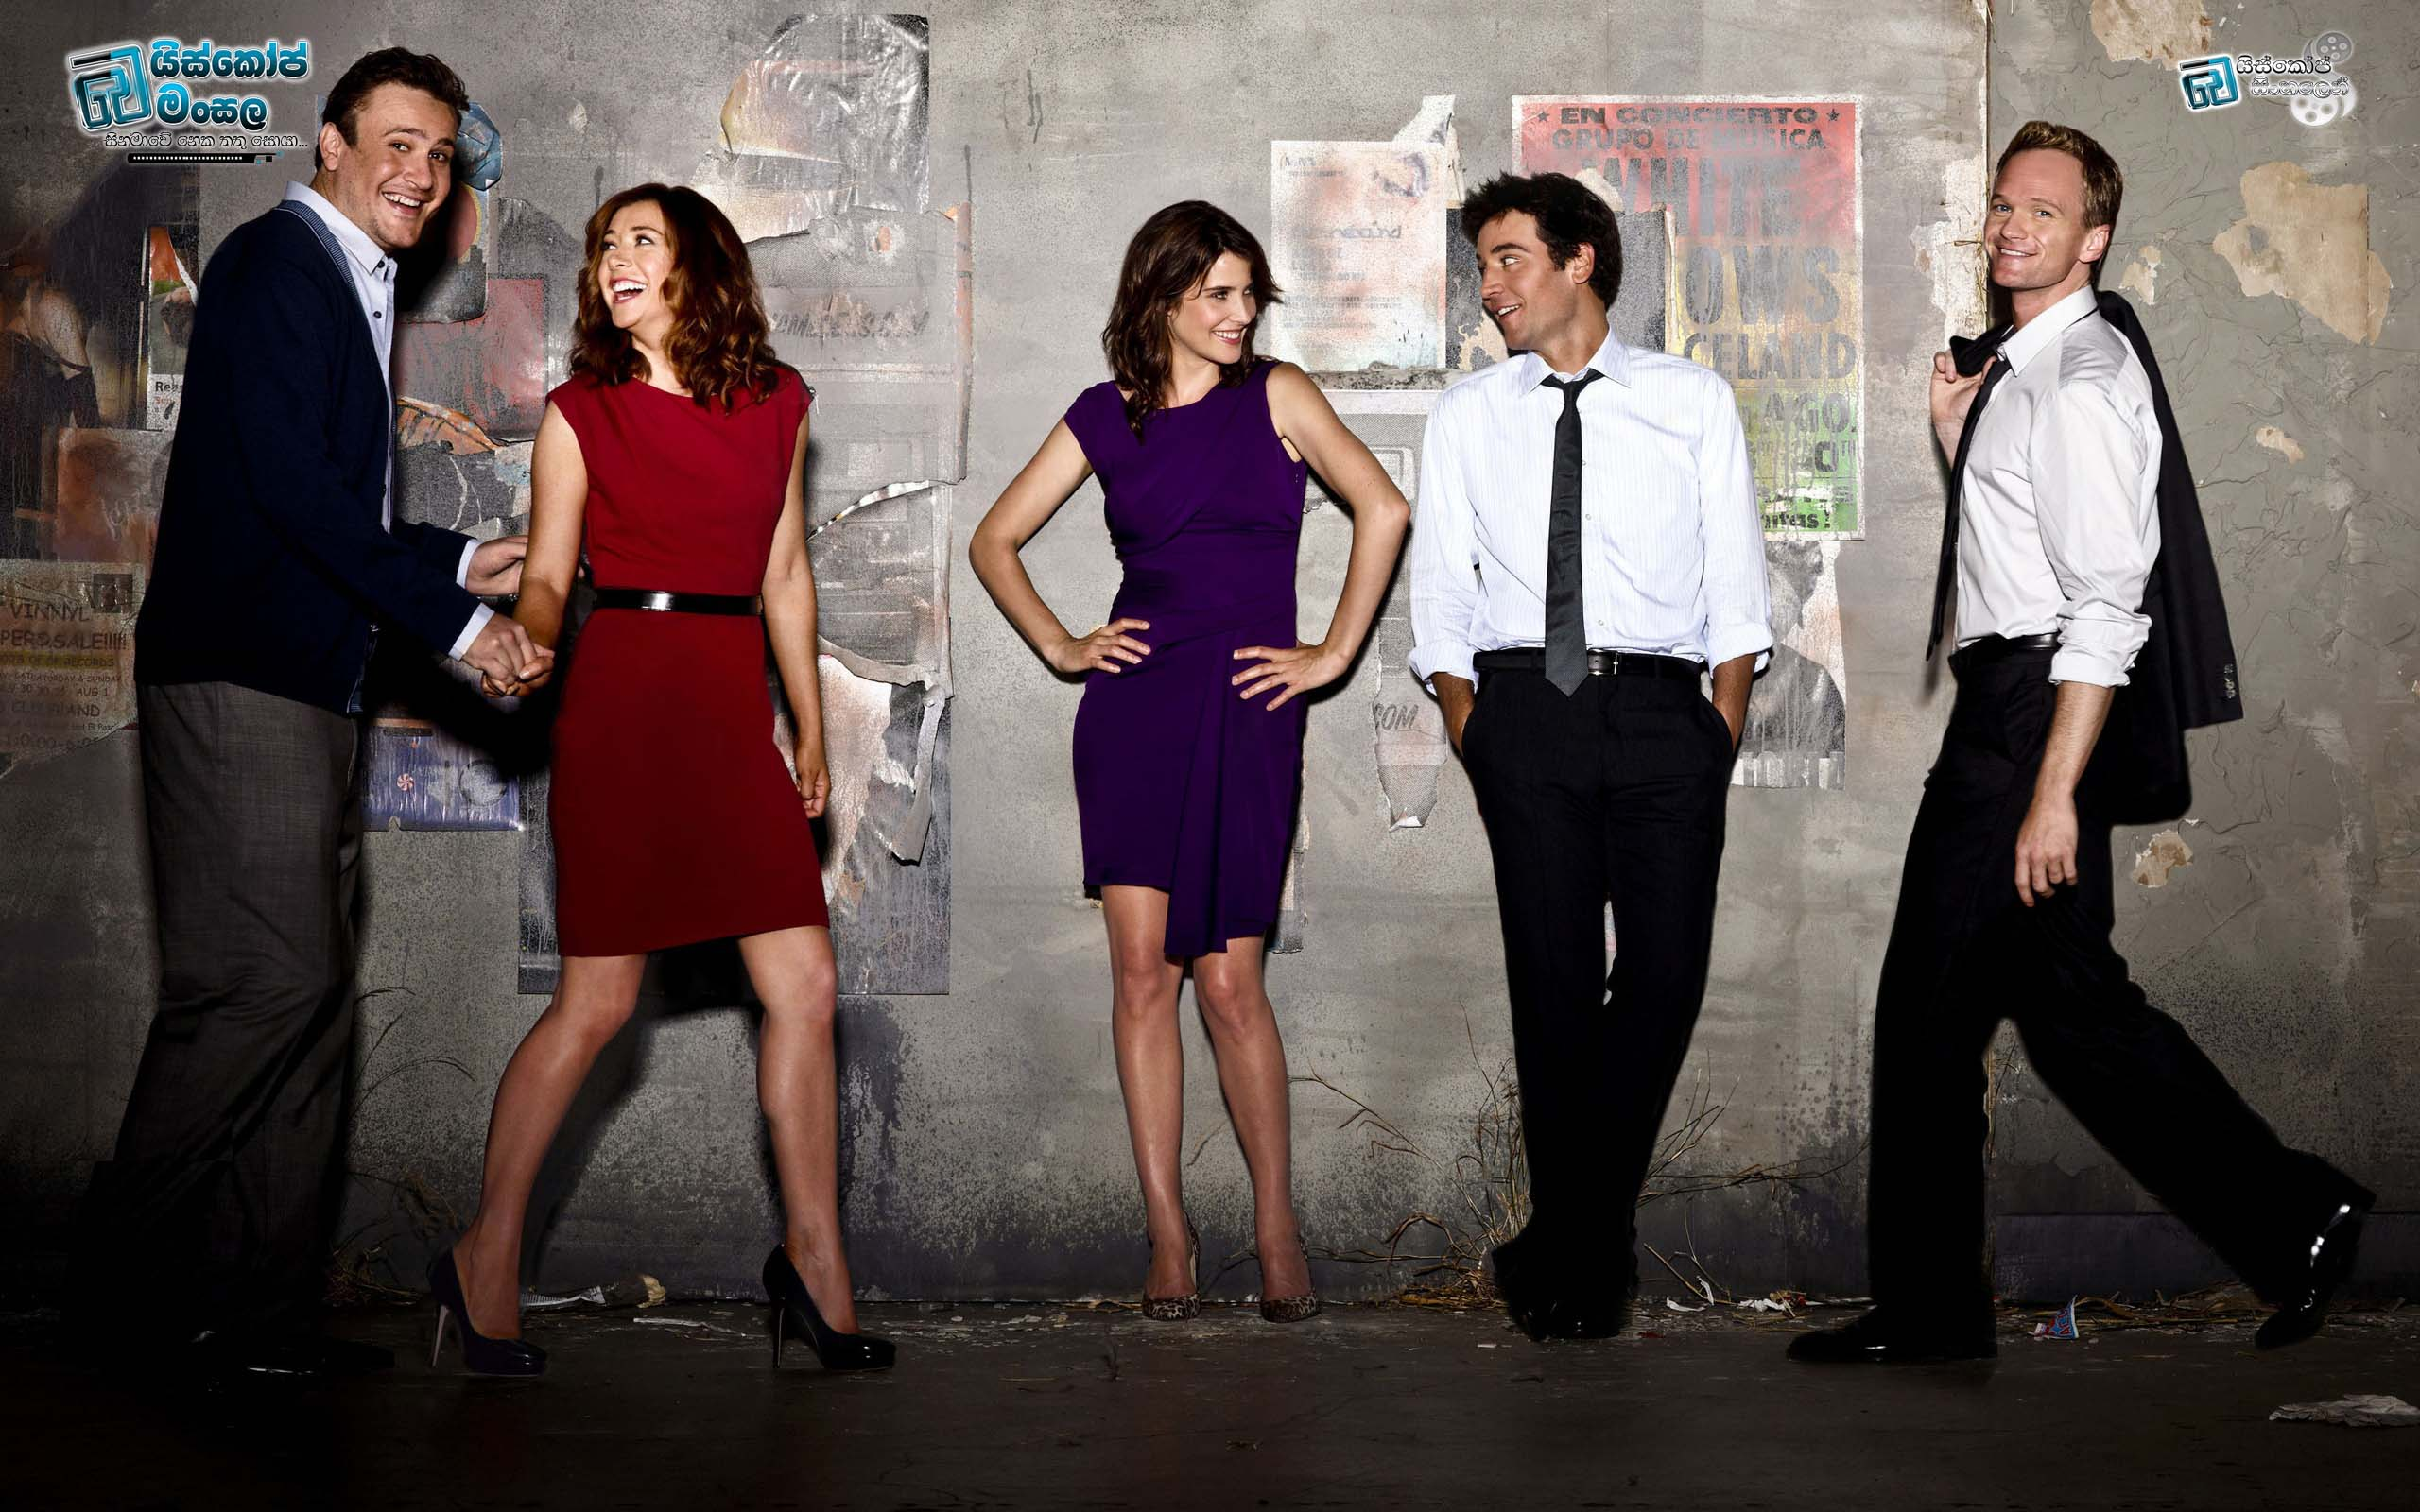 Top 10 How I Met Your Mother Episodes | අපූර්ව කතා මාලාවක්